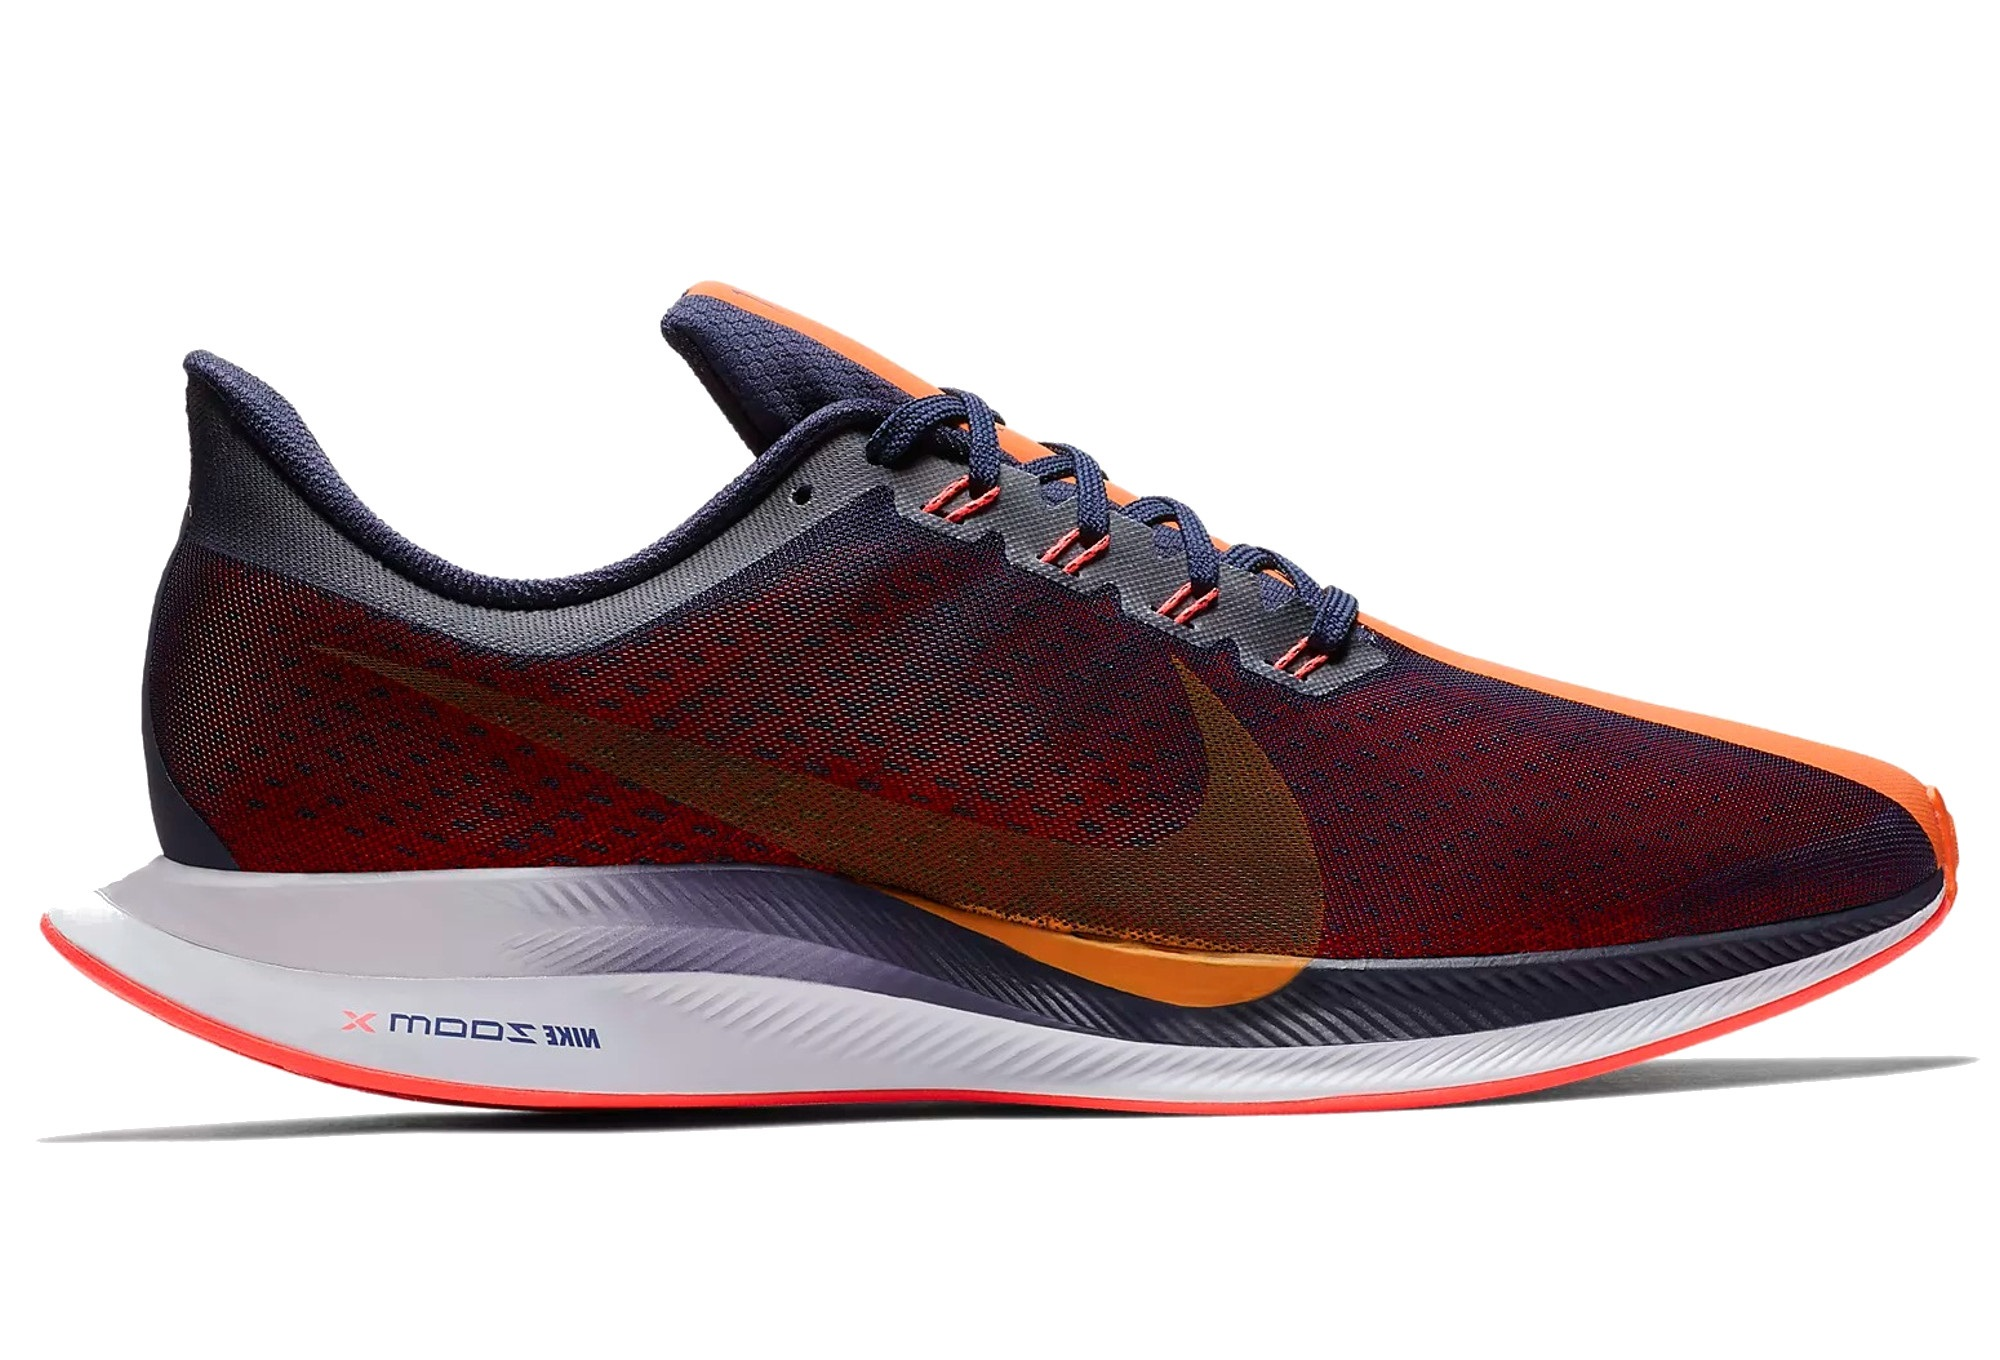 115440626b7b6 Nike Shoes Zoom Pegasus Turbo Blue Purple Orange Men